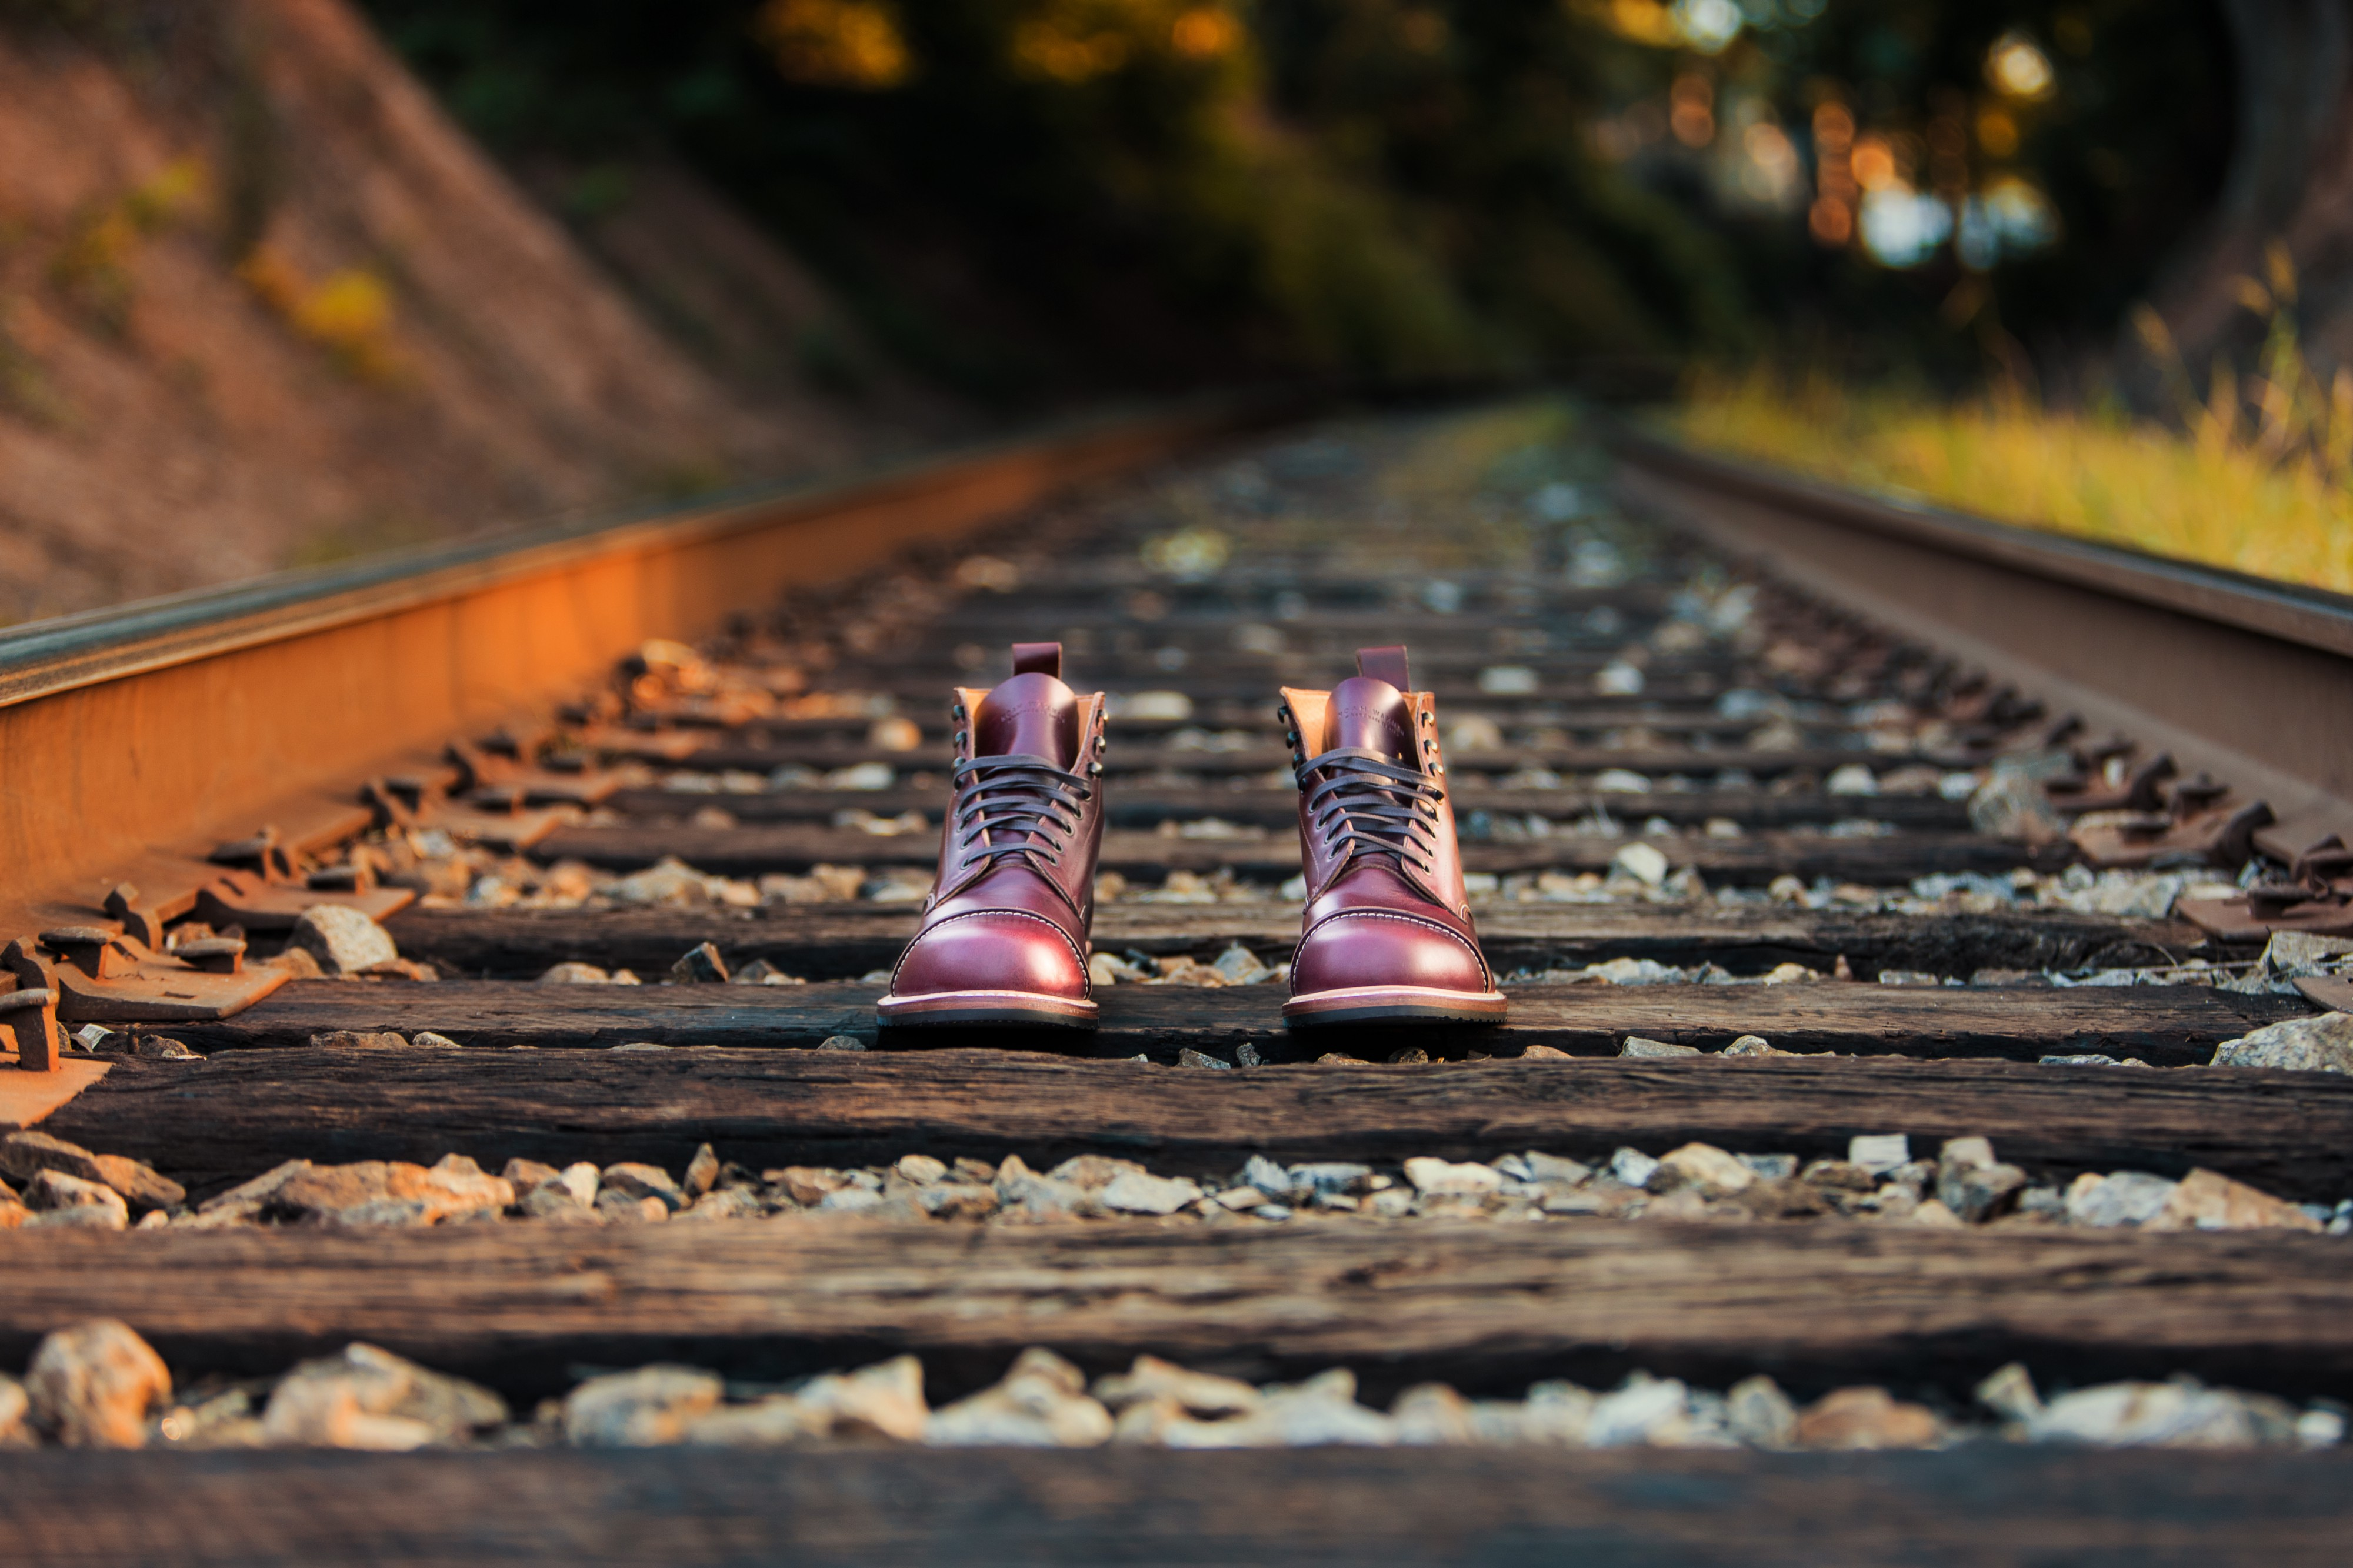 Abandoned Railroad Trails Near Pittsburgh that will Fuel